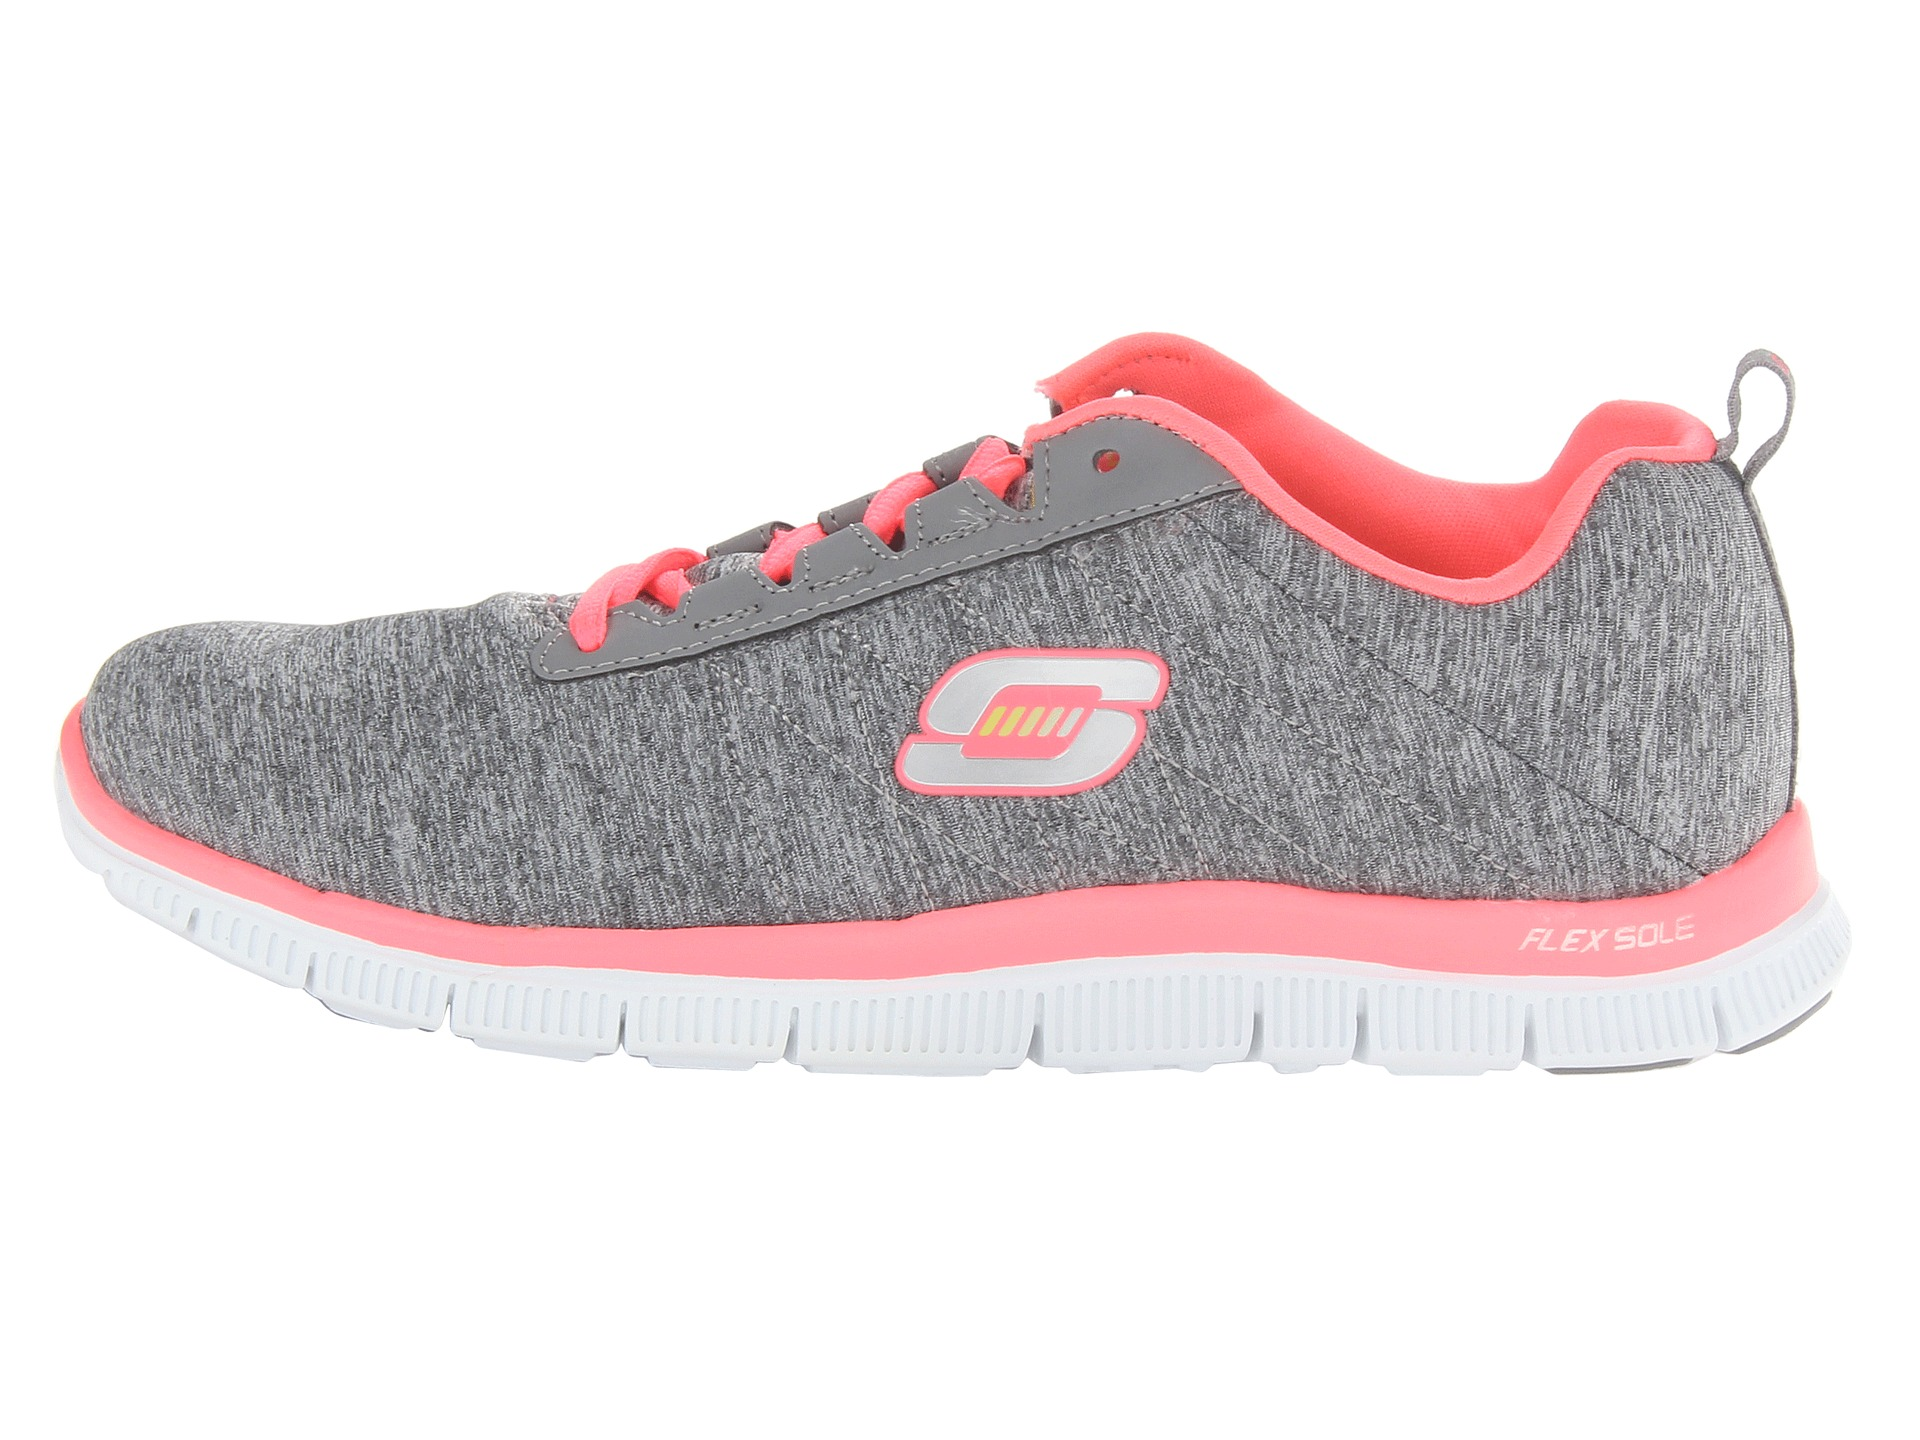 Skechers Womens Tennis Shoes Reviews